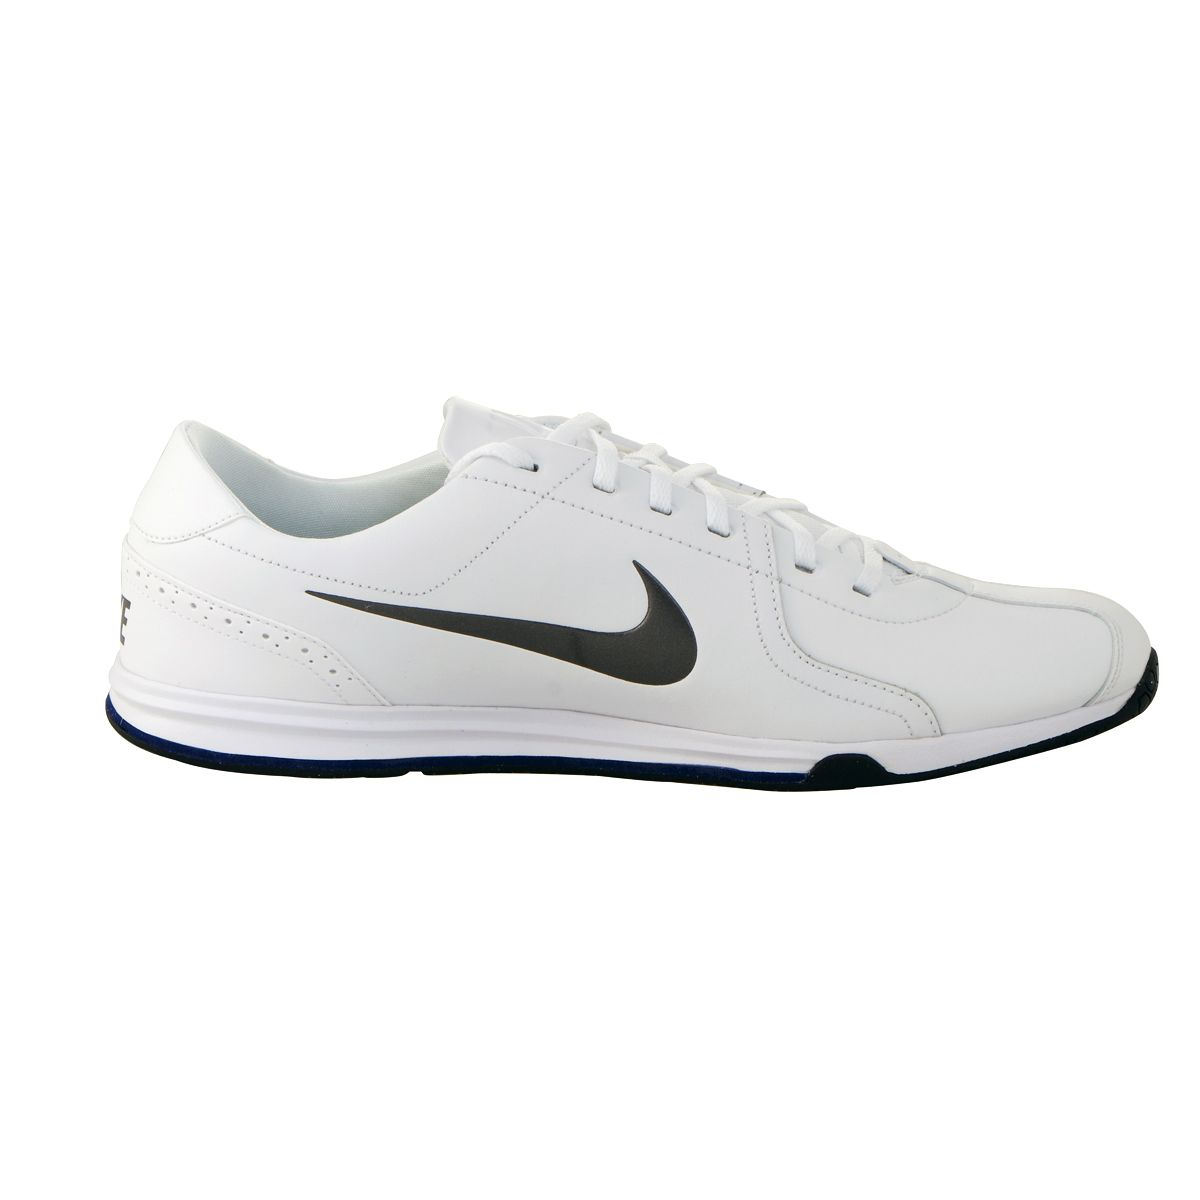 50% off best deals on professional sale chaussure nike taille,chaussure nike huarache 2016 femme brunblanc ...